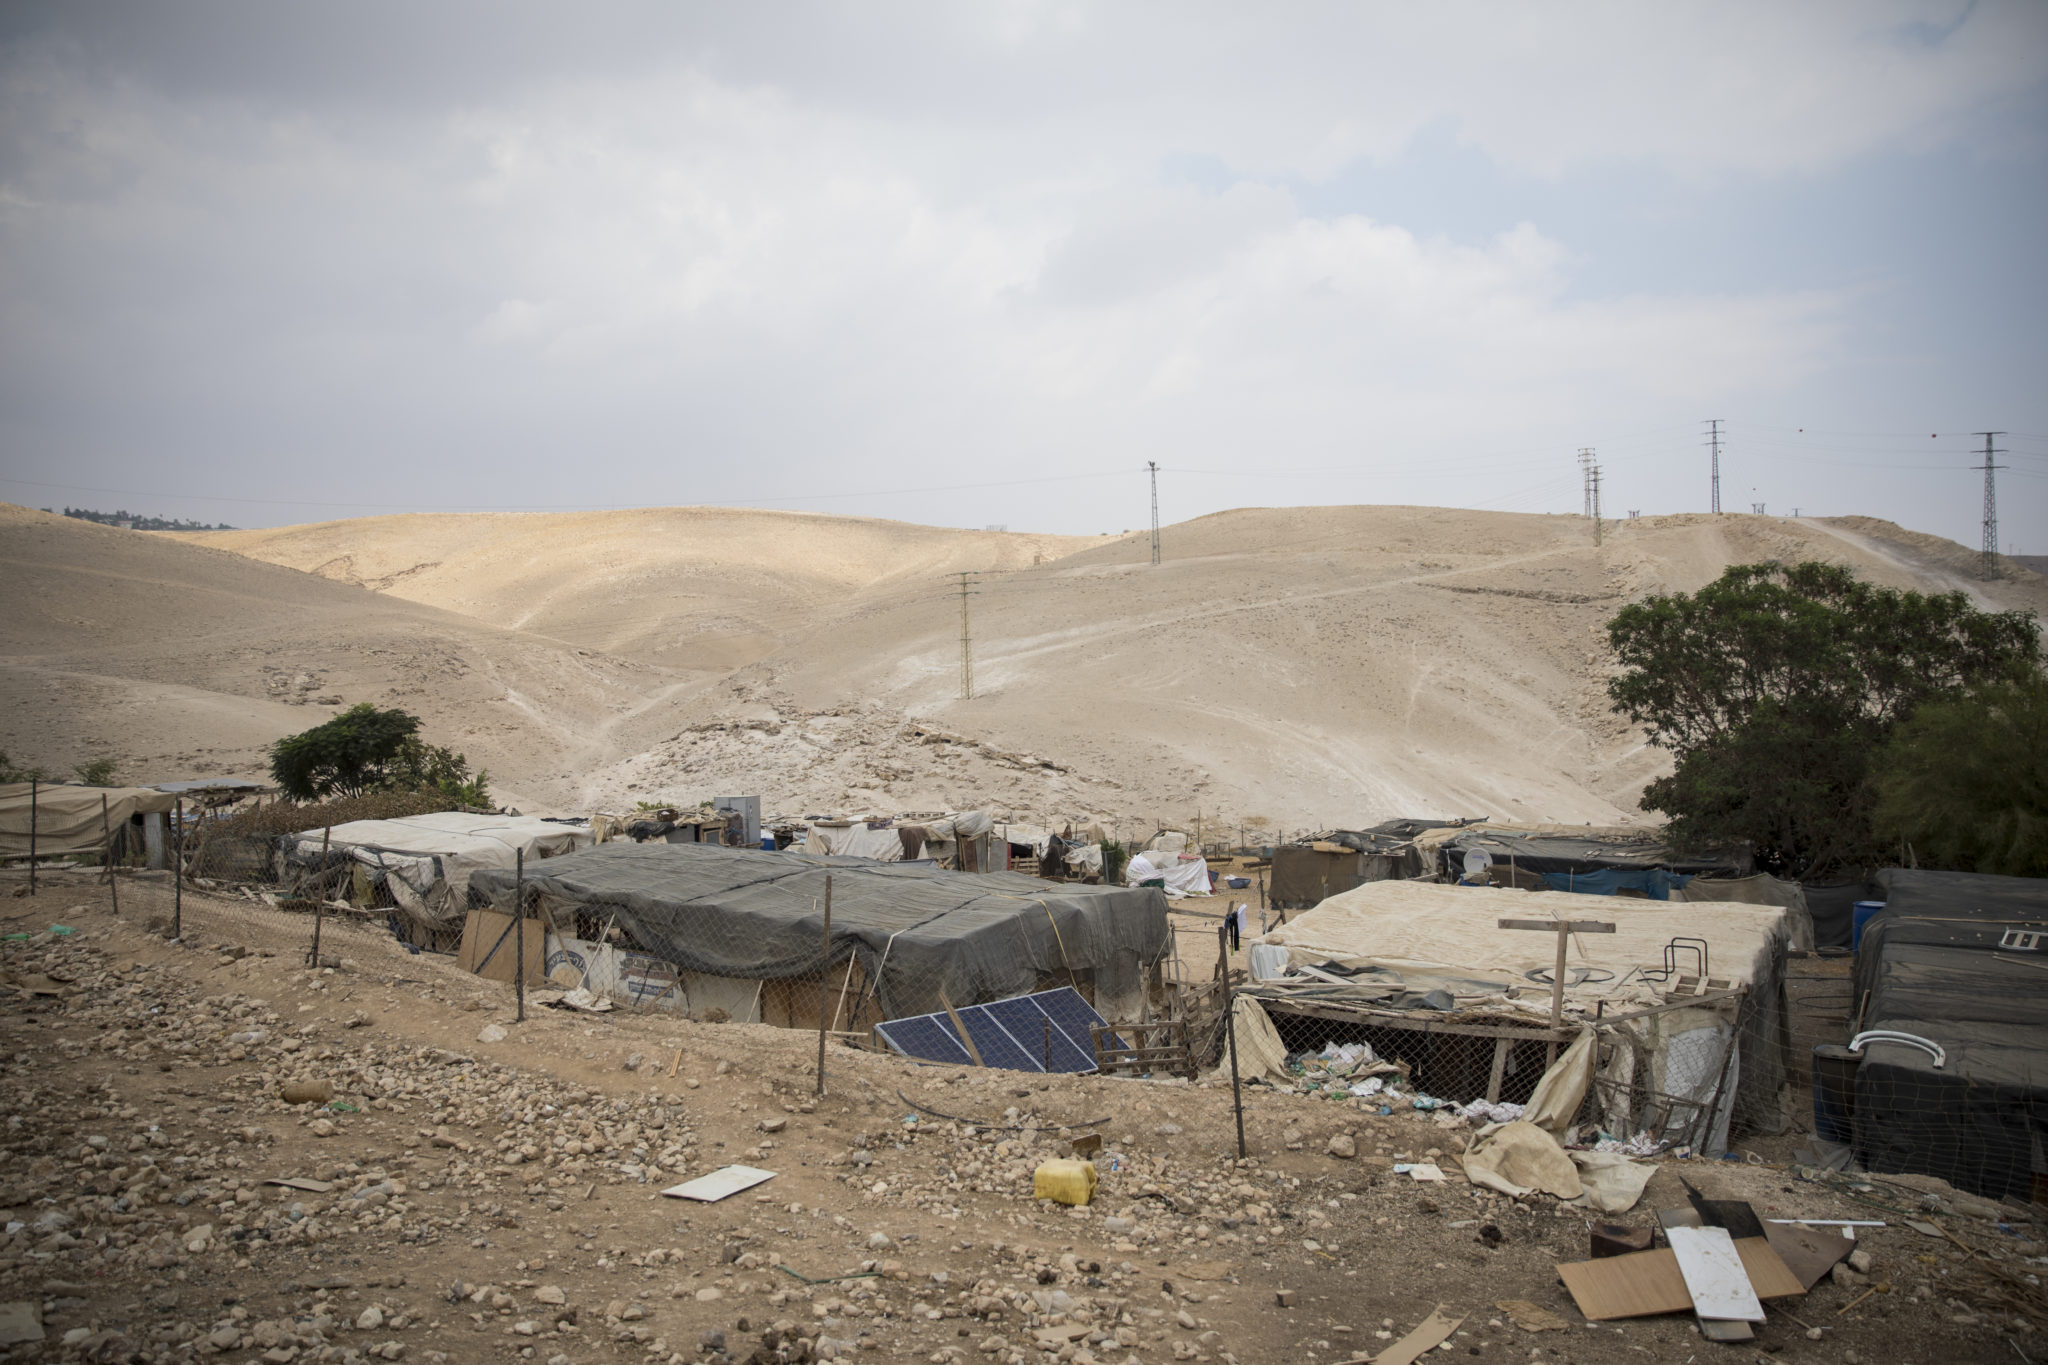 Israel/OPT: Demolition of Palestinian village of Khan al-Ahmar is cruel blow and war crime